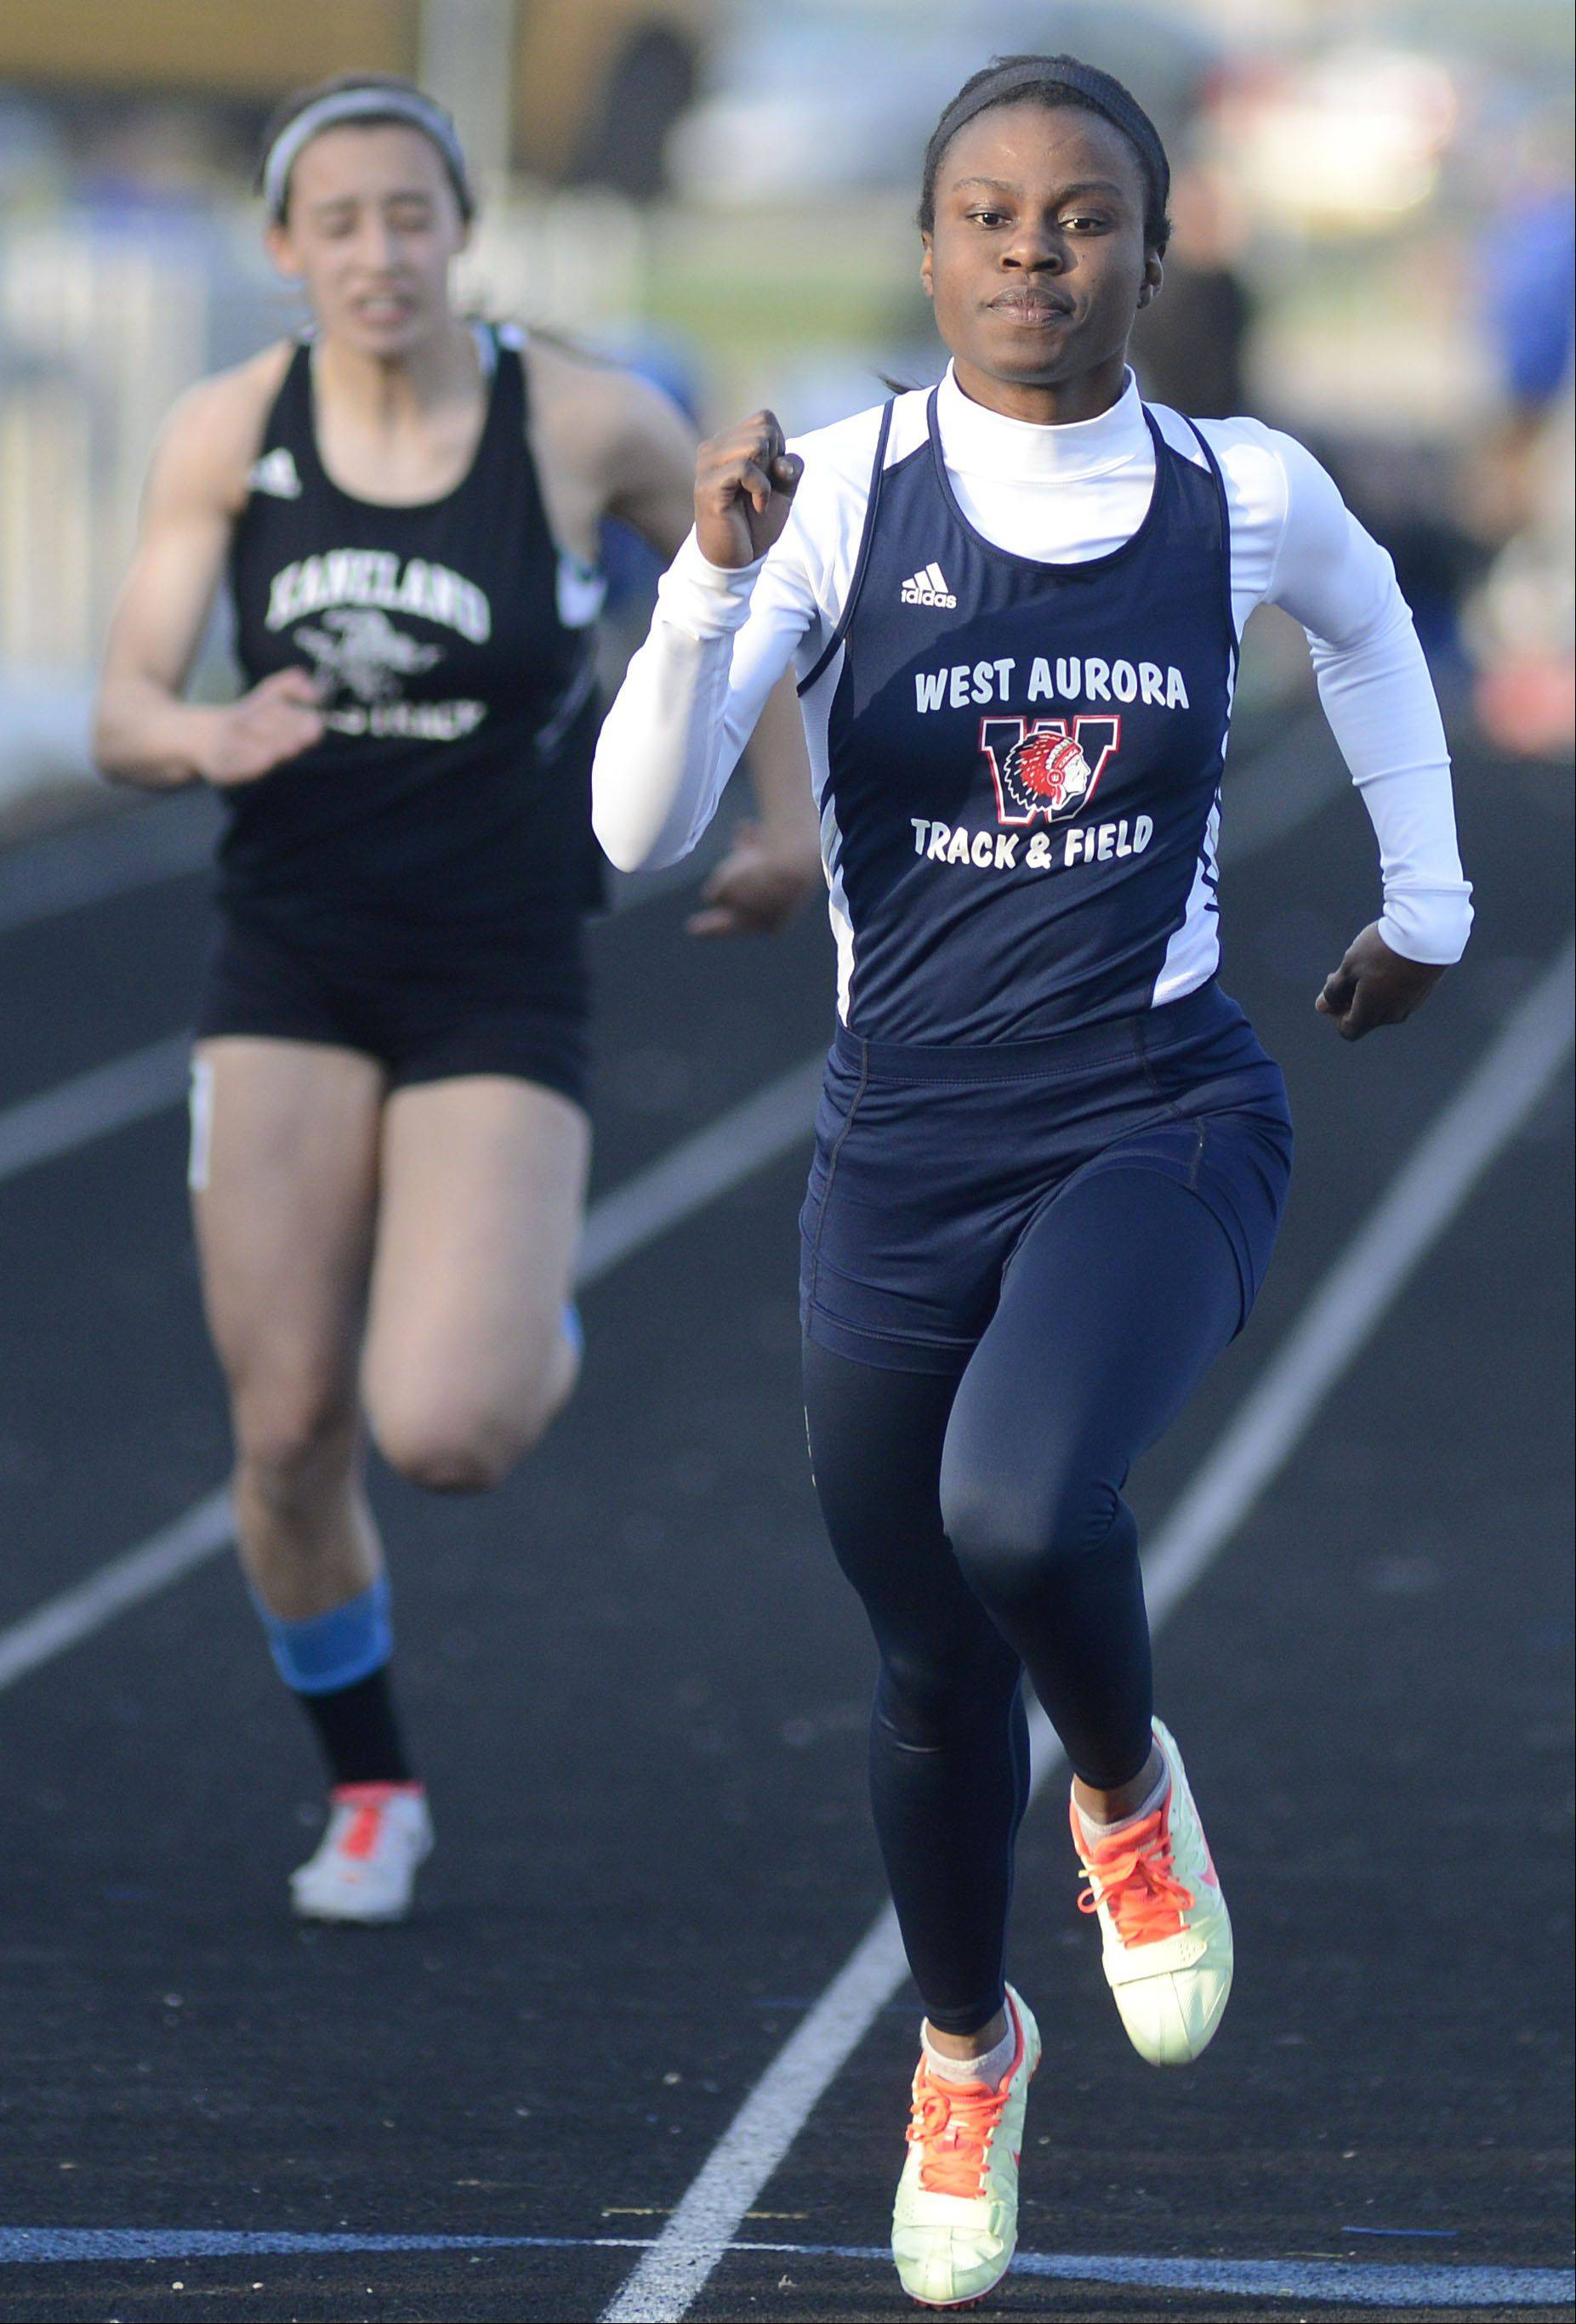 West Aurora's Anita Saffa takes first place in the 100 meter dash final at the Kane County Invitational track in Geneva meet on Friday, April 26.